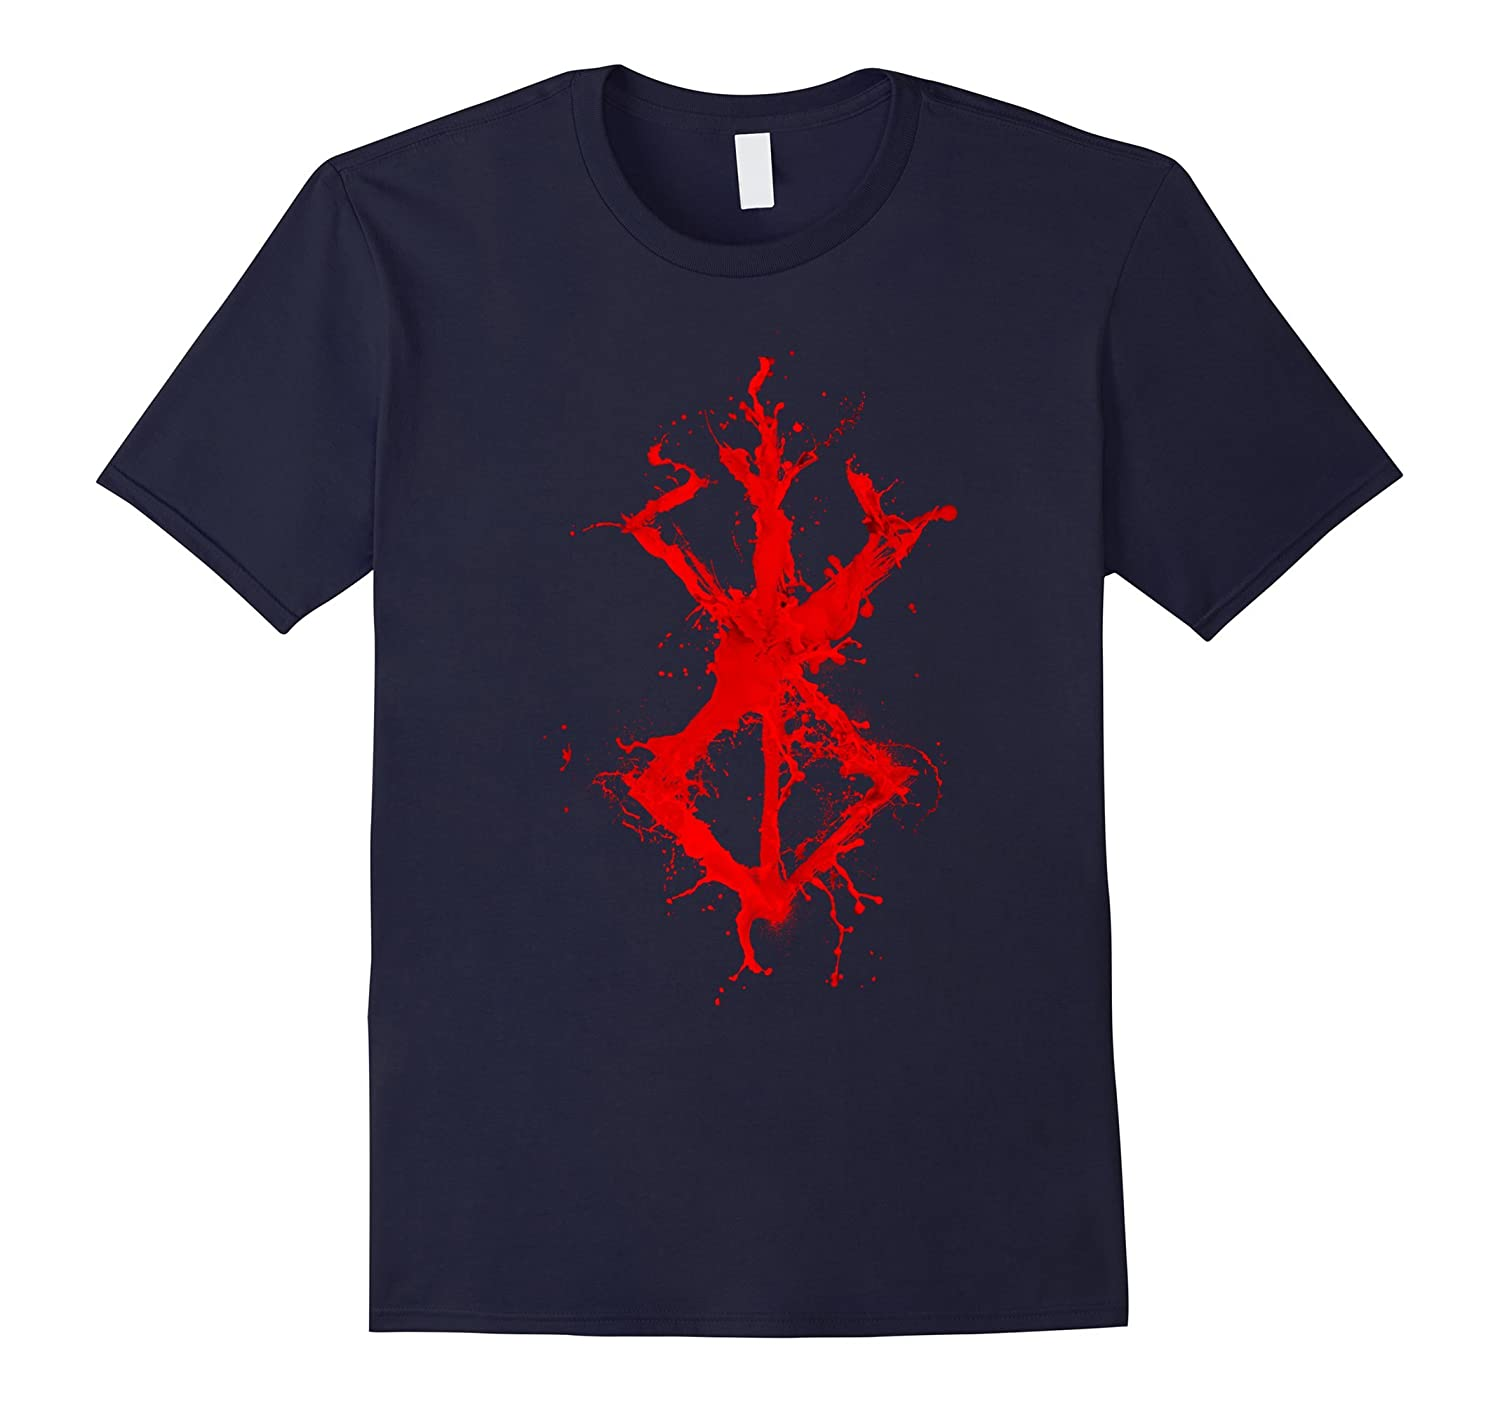 Berserk Blood - Valhalla Shirt - Viking Warrior T-Shirt-BN